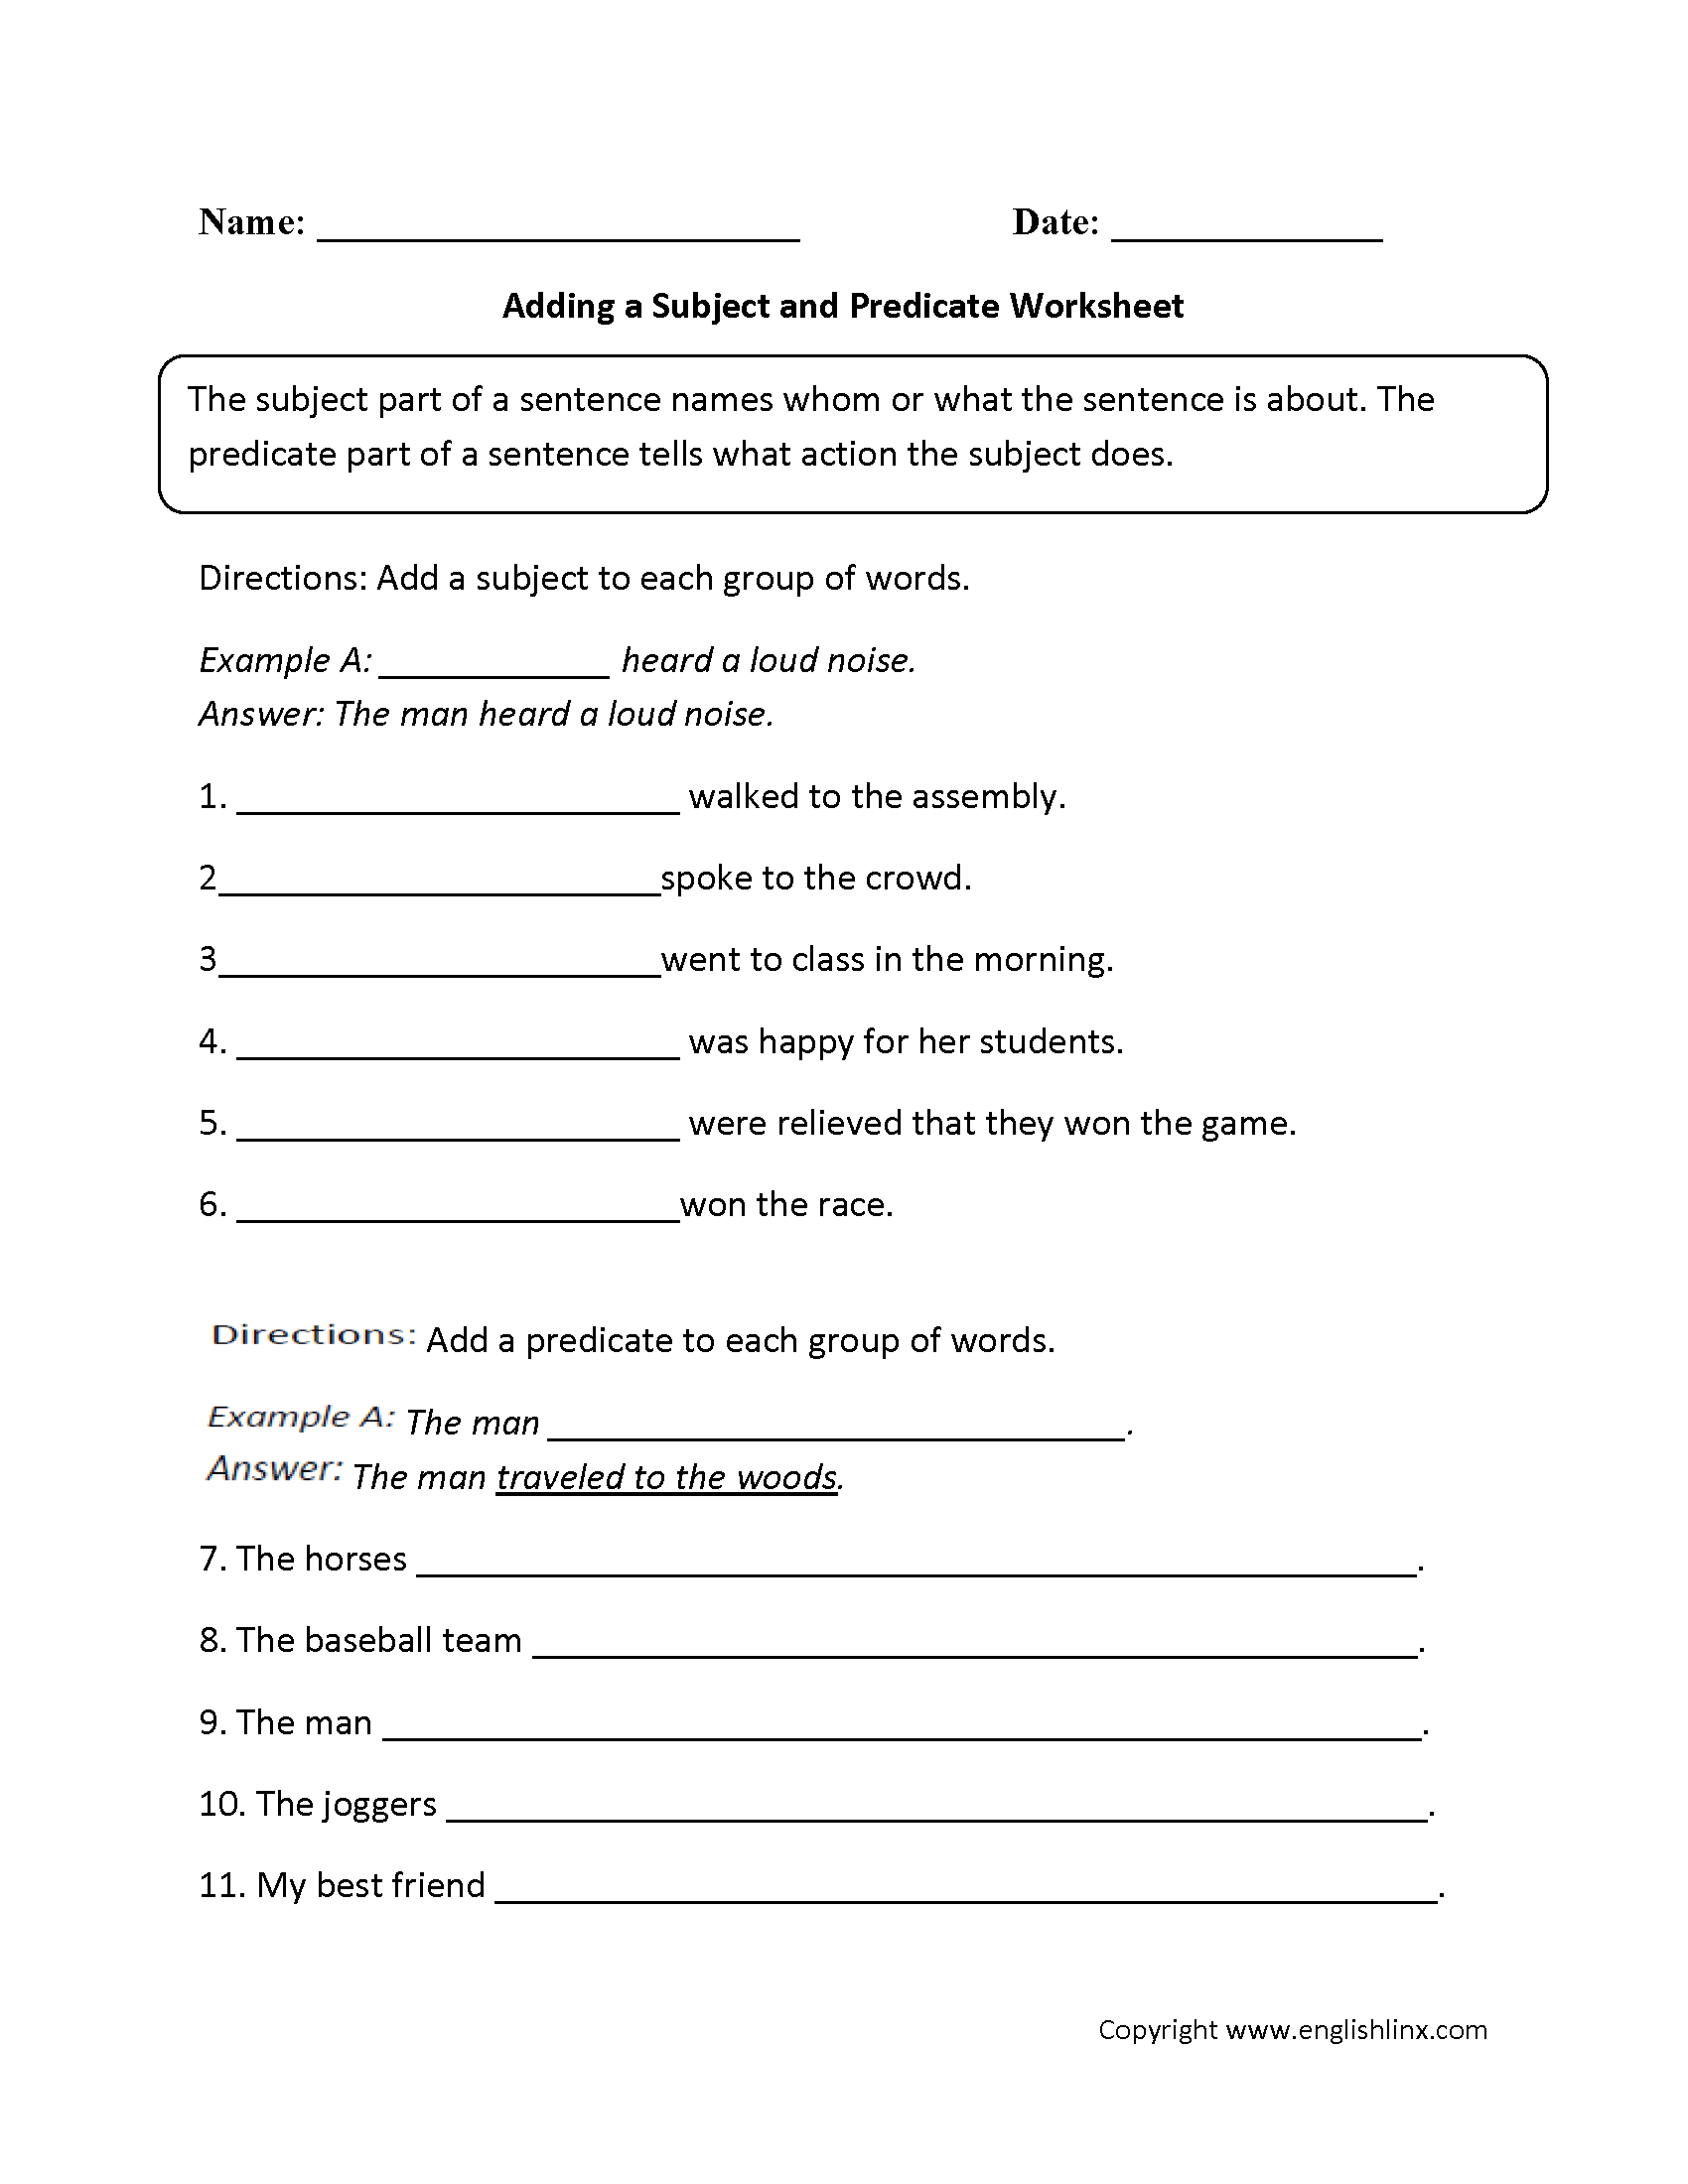 worksheet Fourth Grade English Worksheets englishlinx com subject and predicate worksheets adding a subejct worksheet